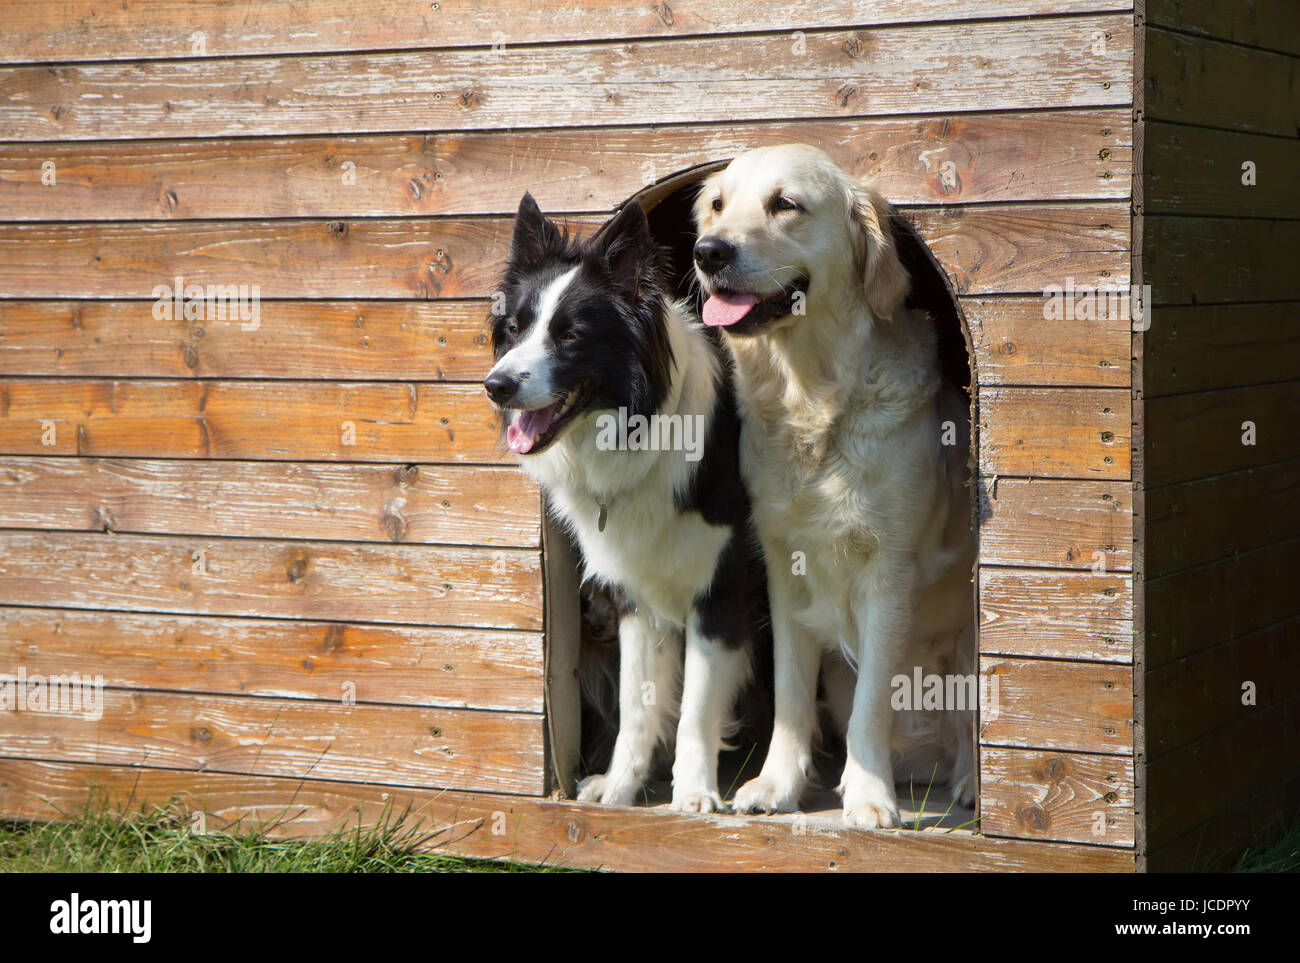 border collie and golden retriever are standing at wooden doghouse